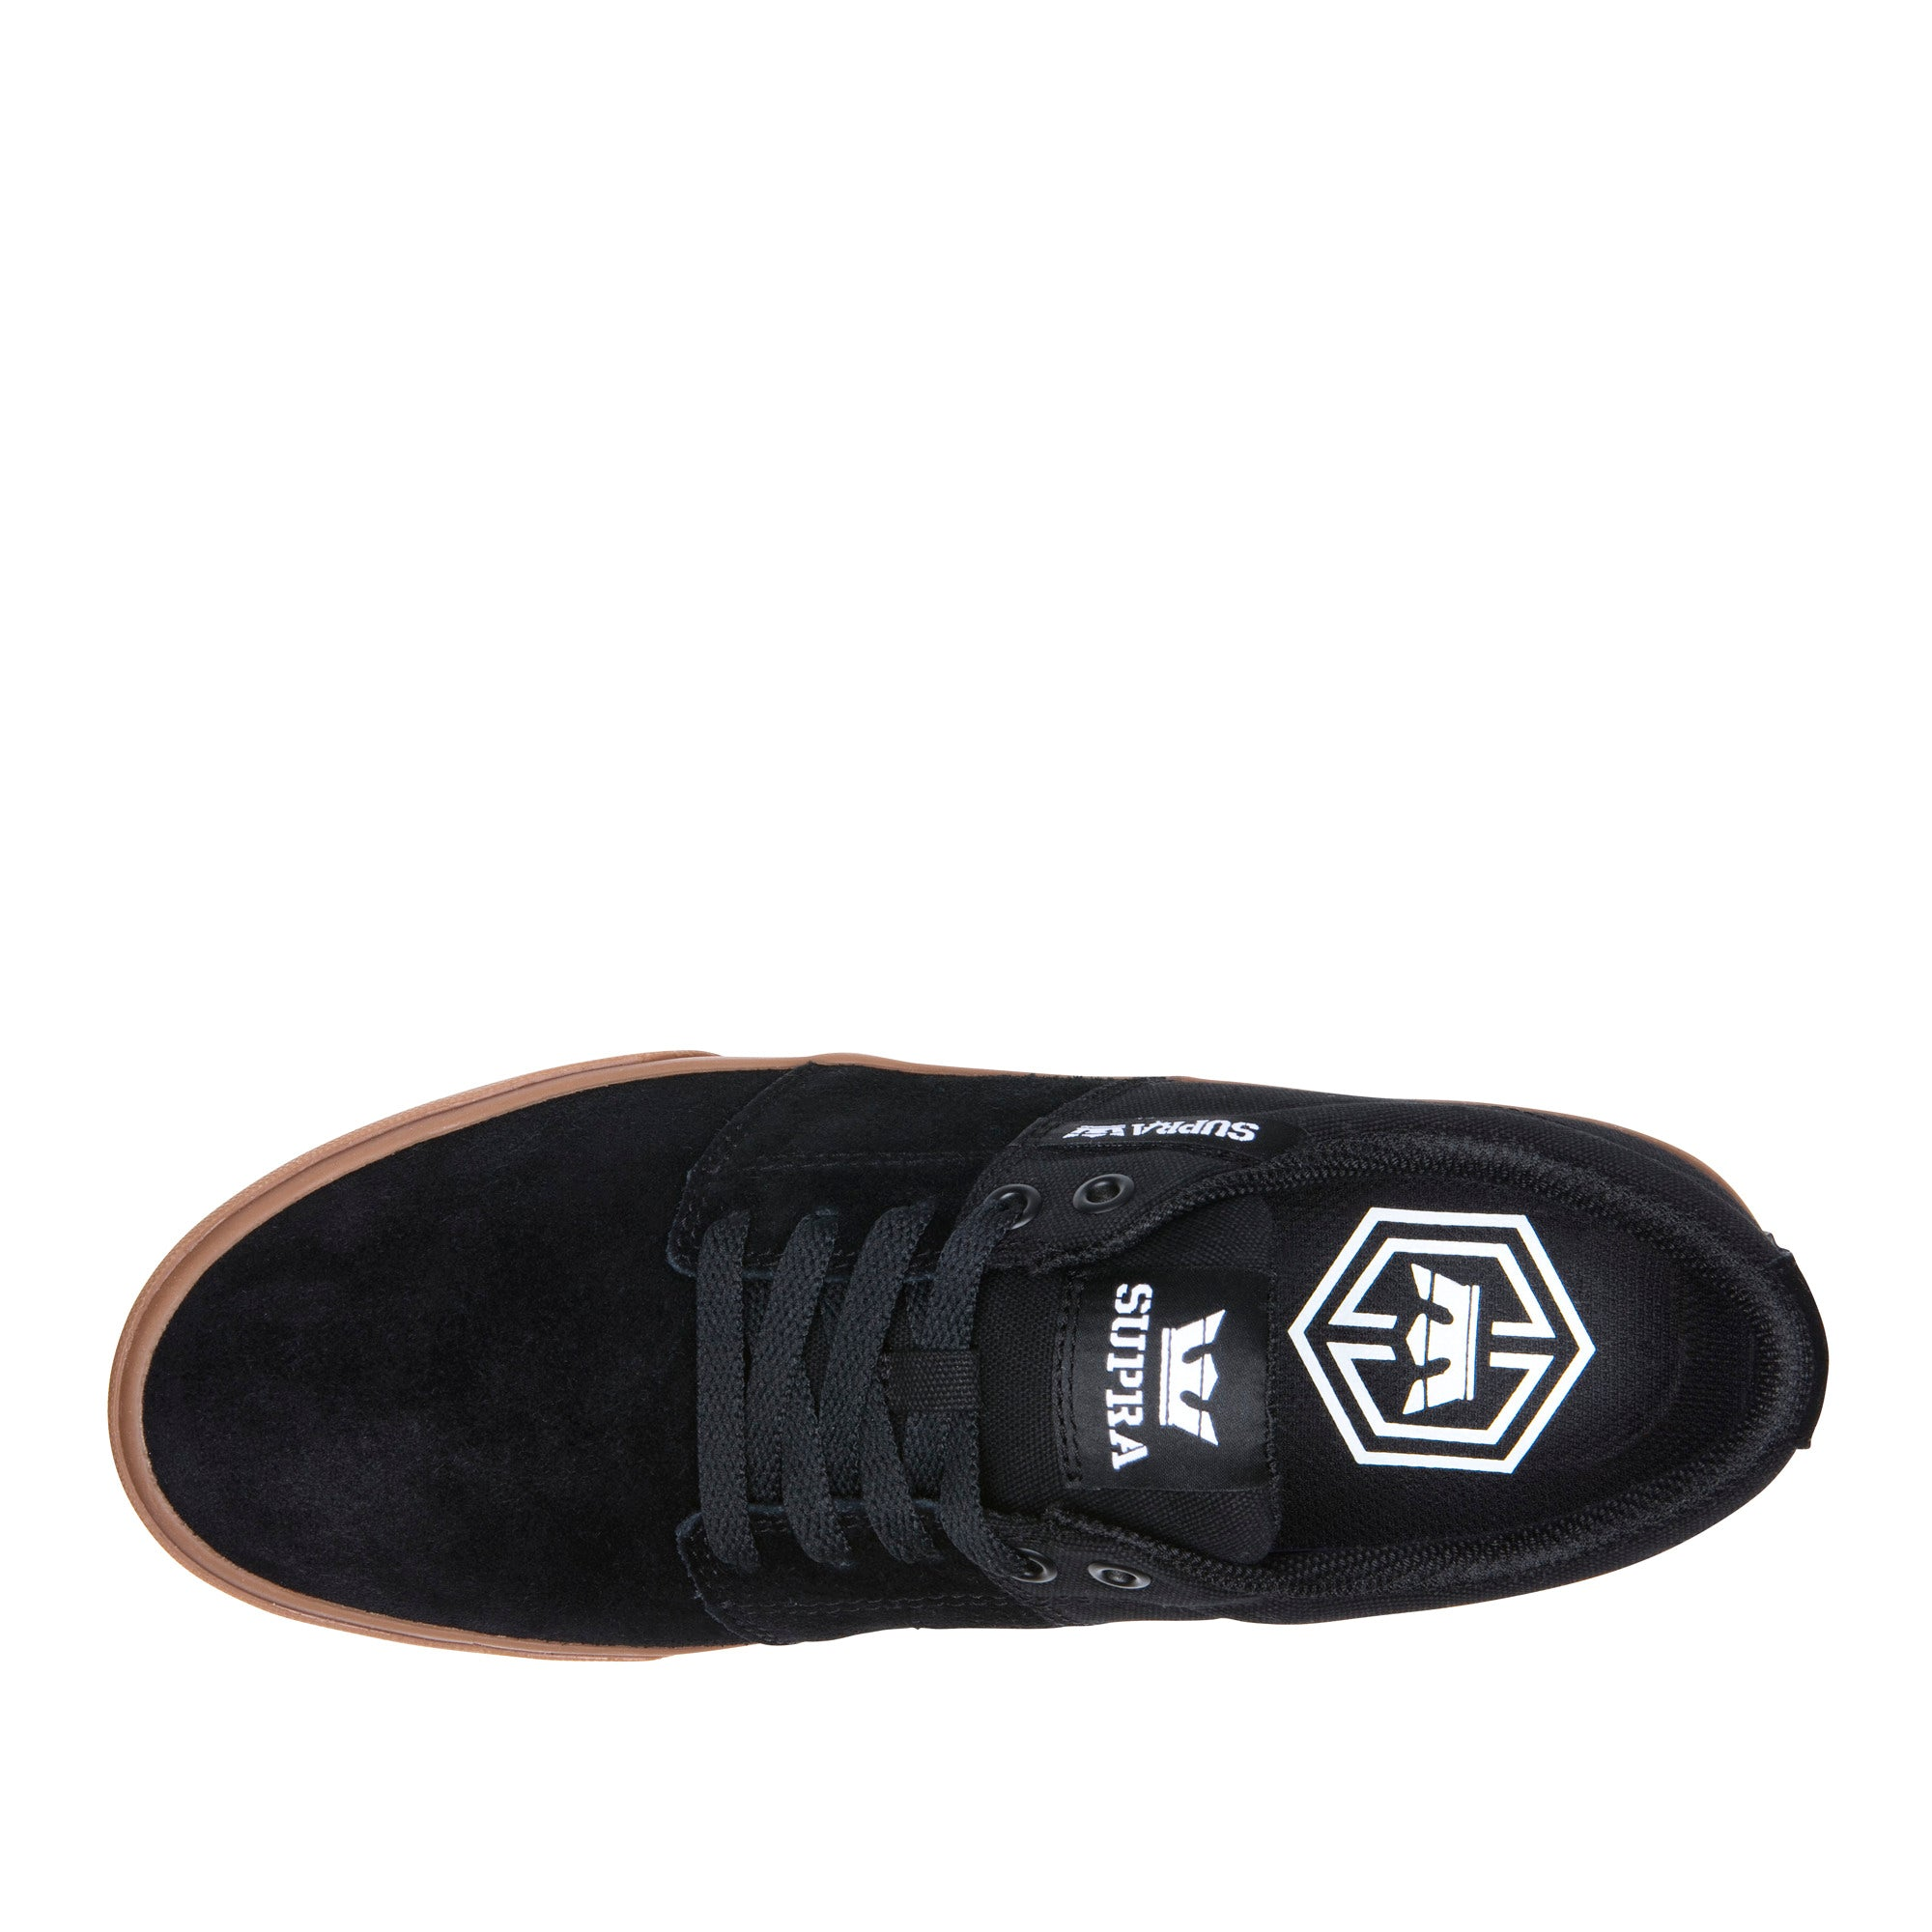 08193 055 M | STACKS II VULC | BLACK GUM